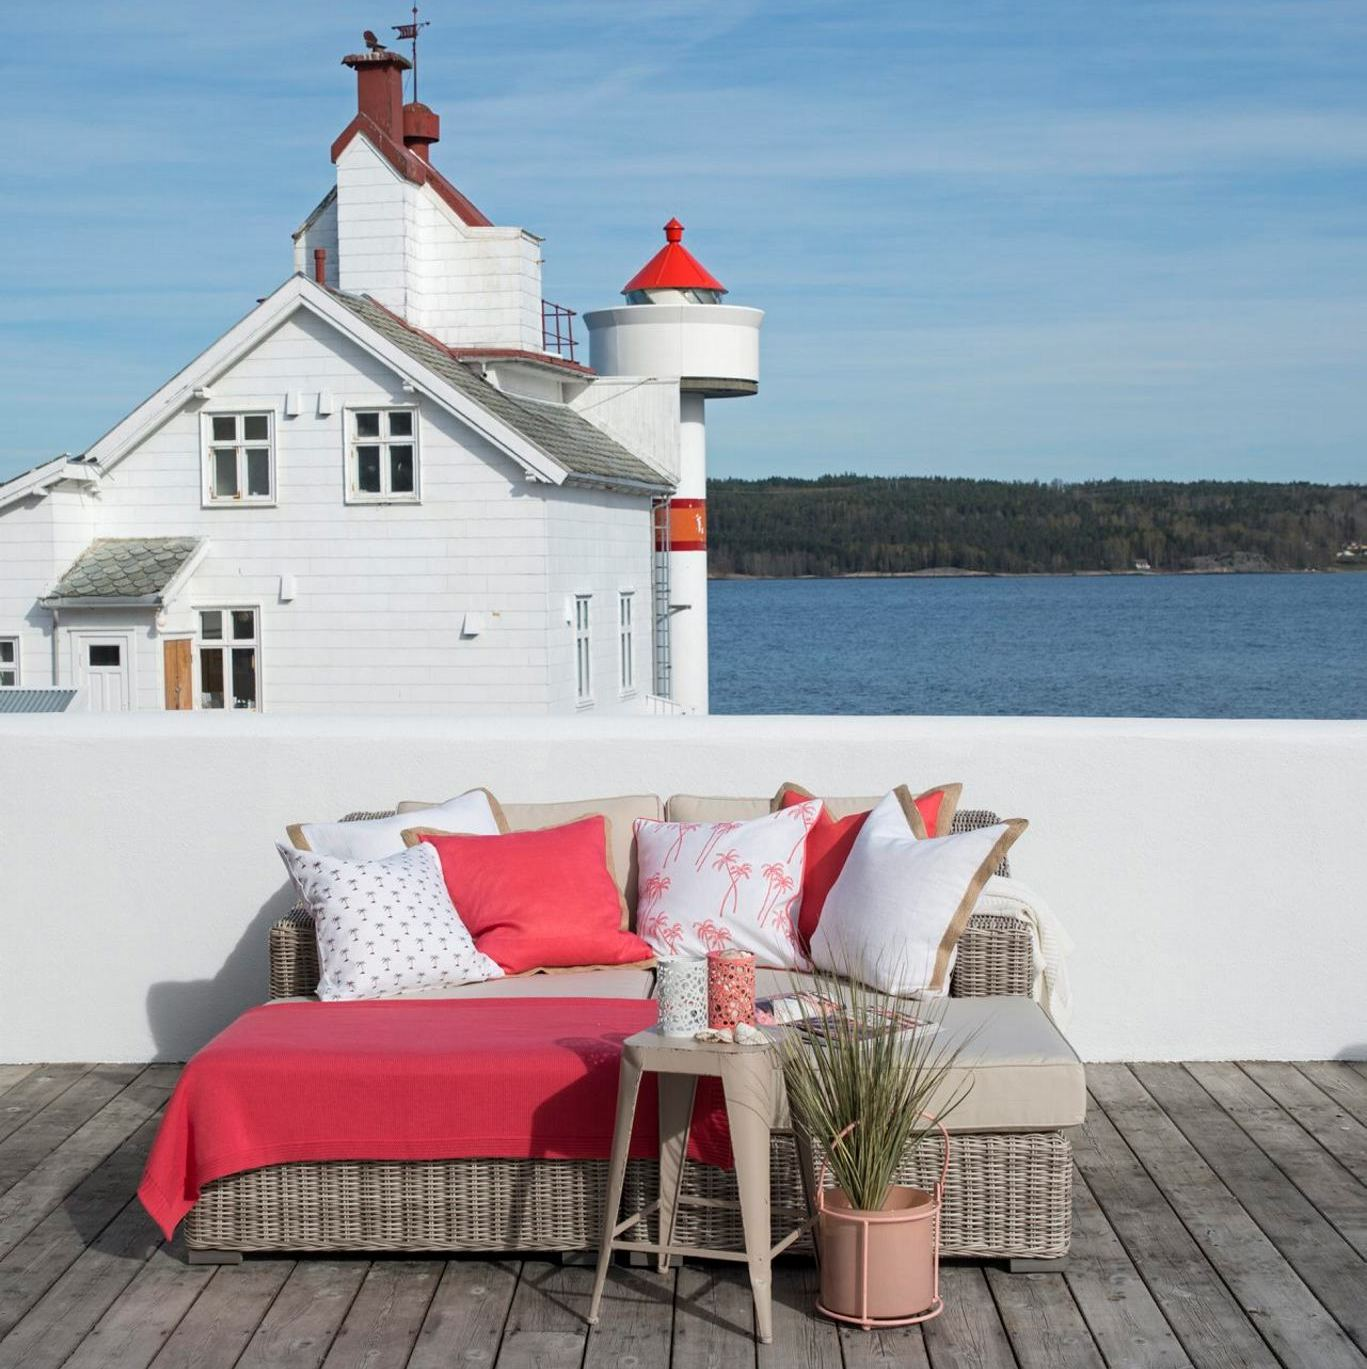 Blogg home and cottage: mai 2015